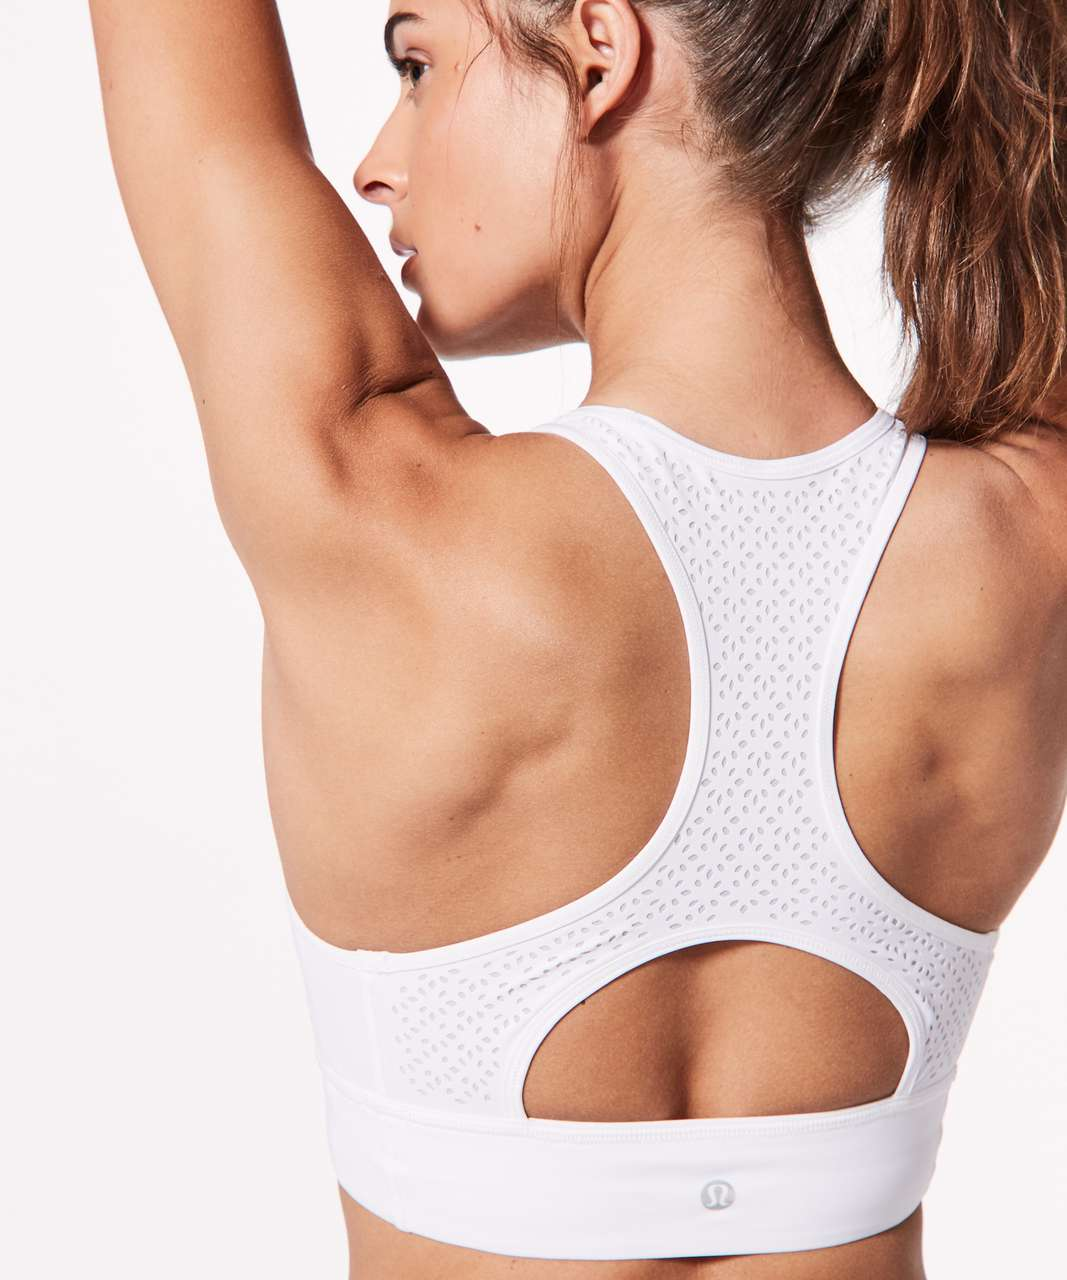 Lululemon Get Your Peek On Bra - White